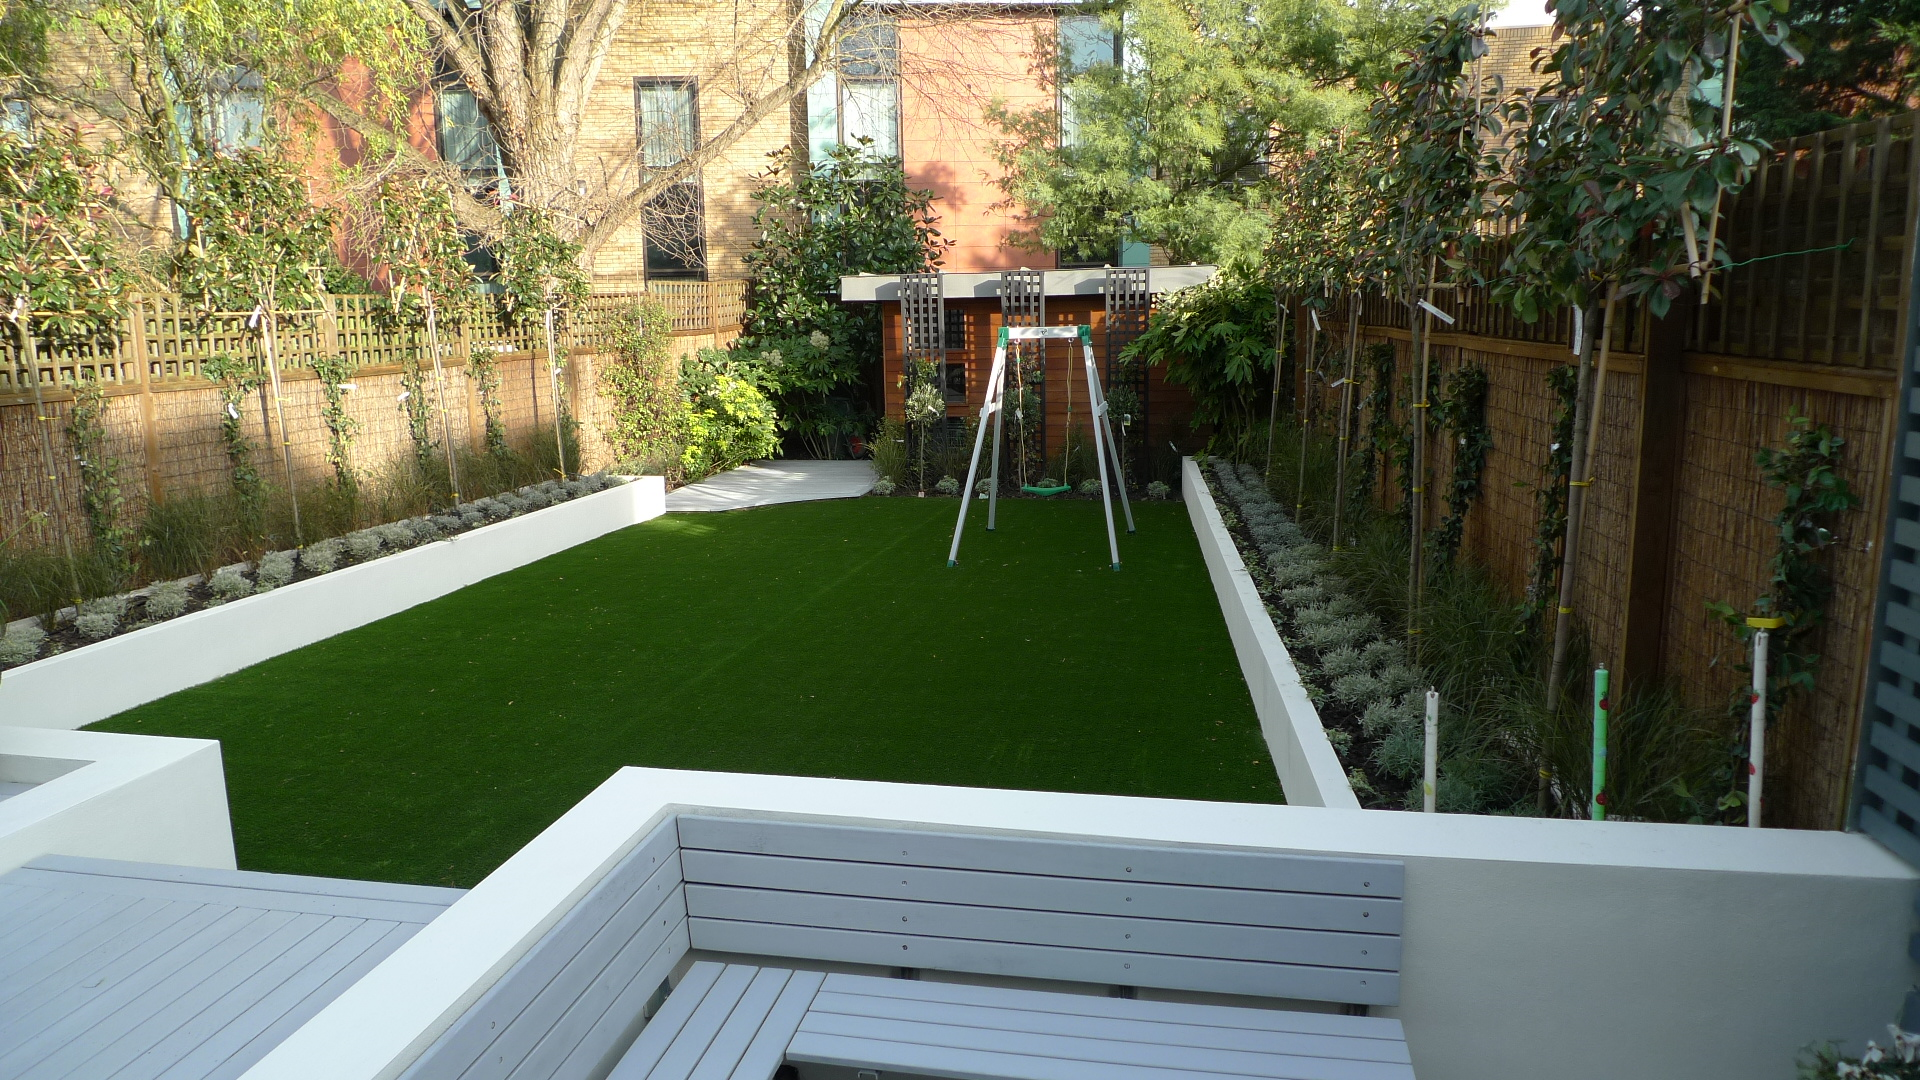 Modern garden design ideas london london garden design - Garden ideas london ...